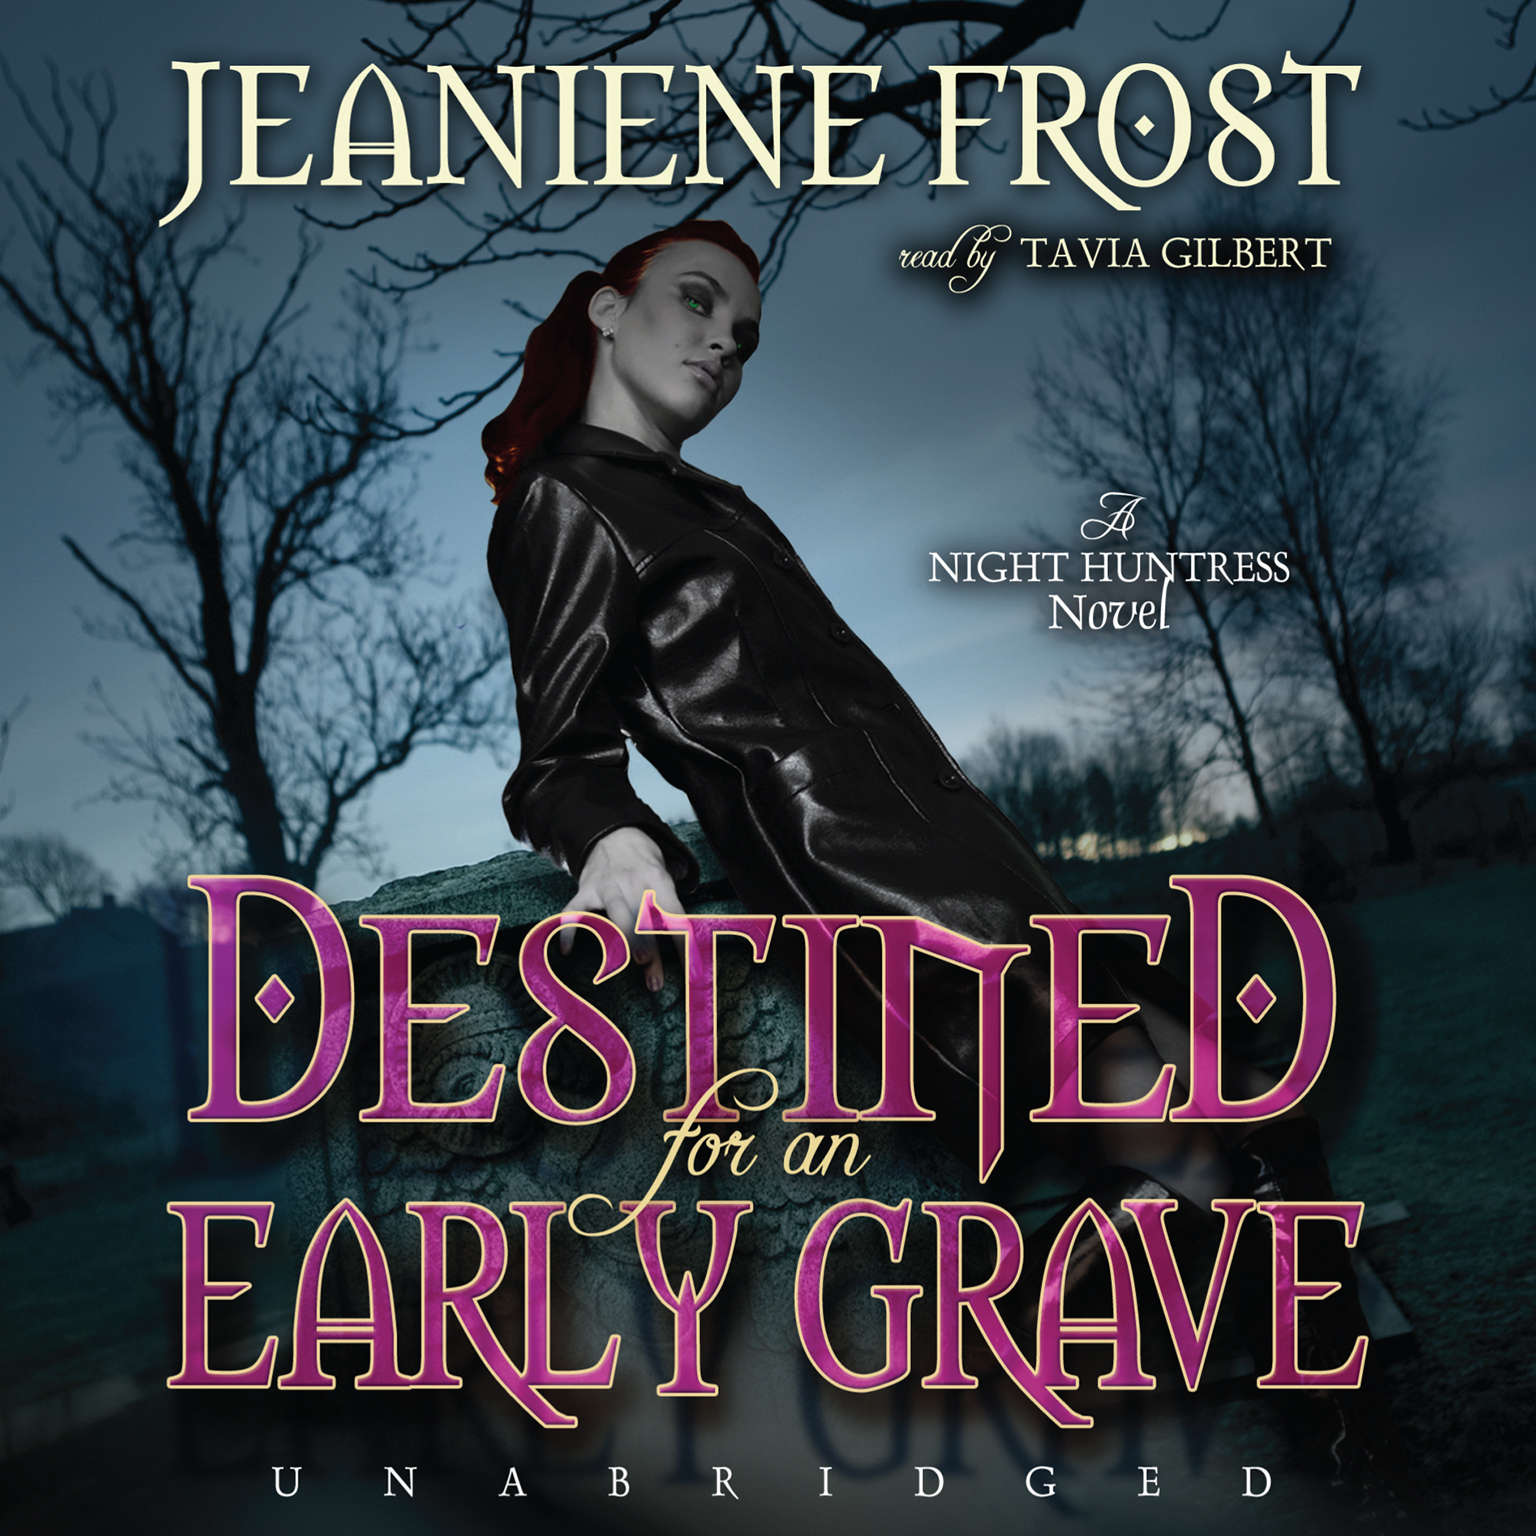 Destined for an Early Grave (Night Huntress, Book 4) by Jeaniene Frost